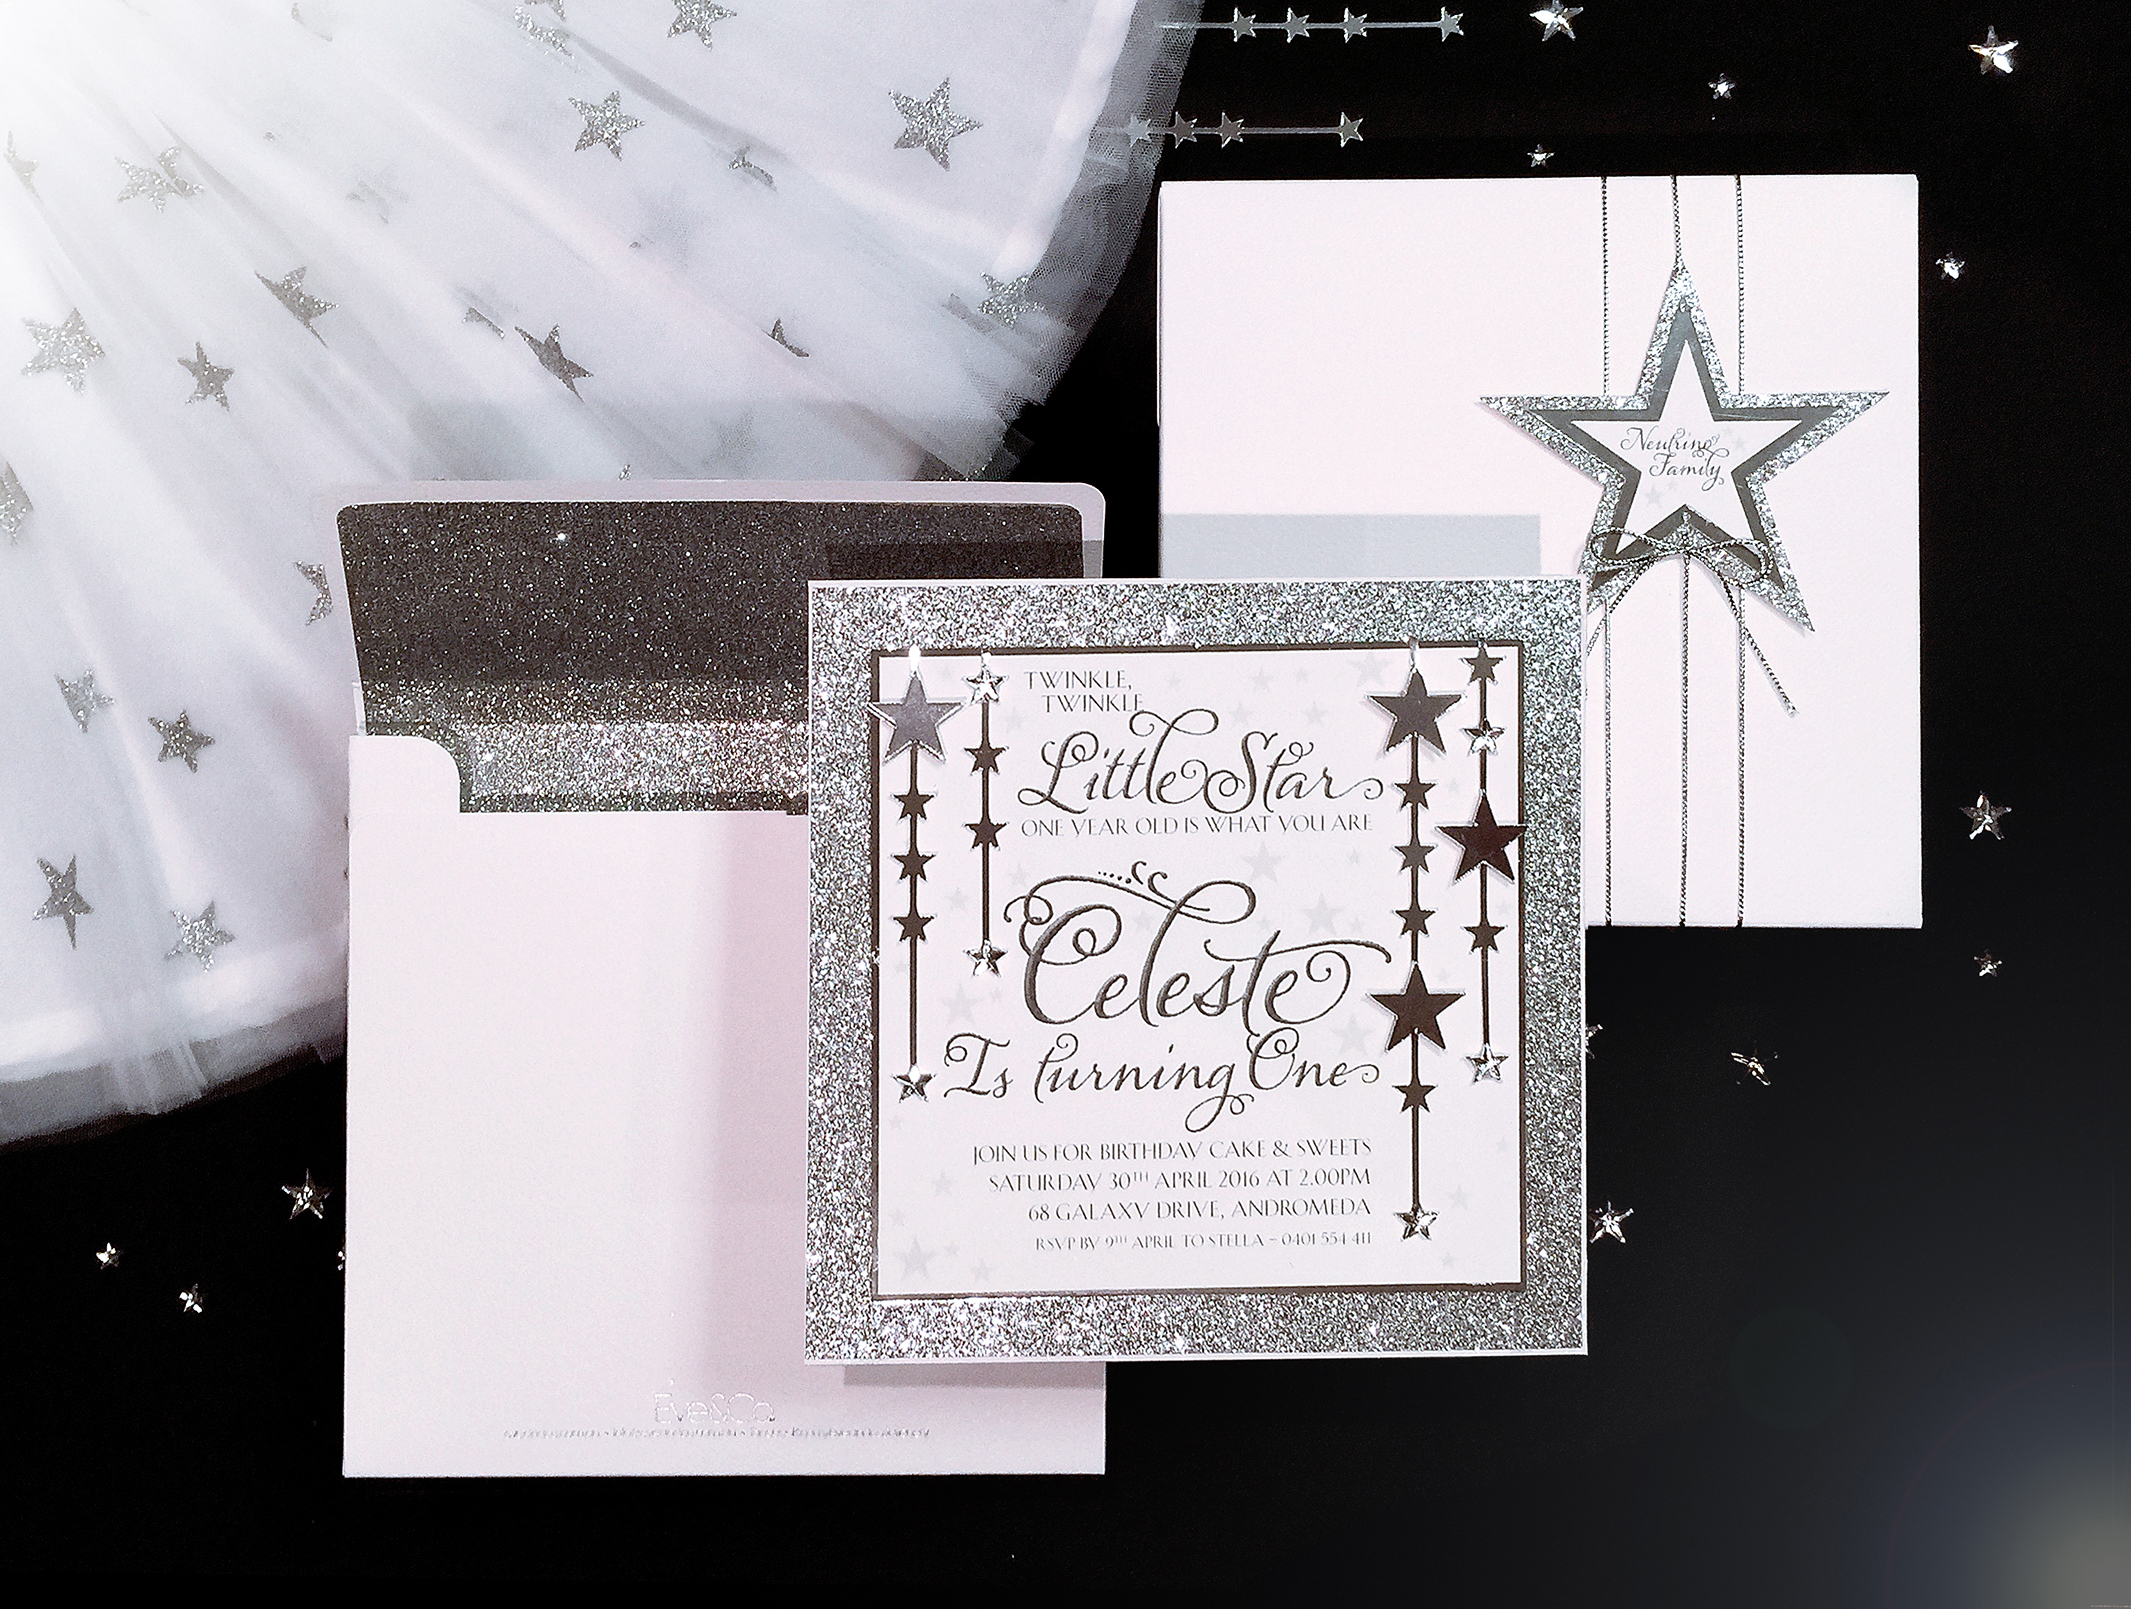 Twinkle Twinkle Little Star Party Supplies Lifes Little Celebration